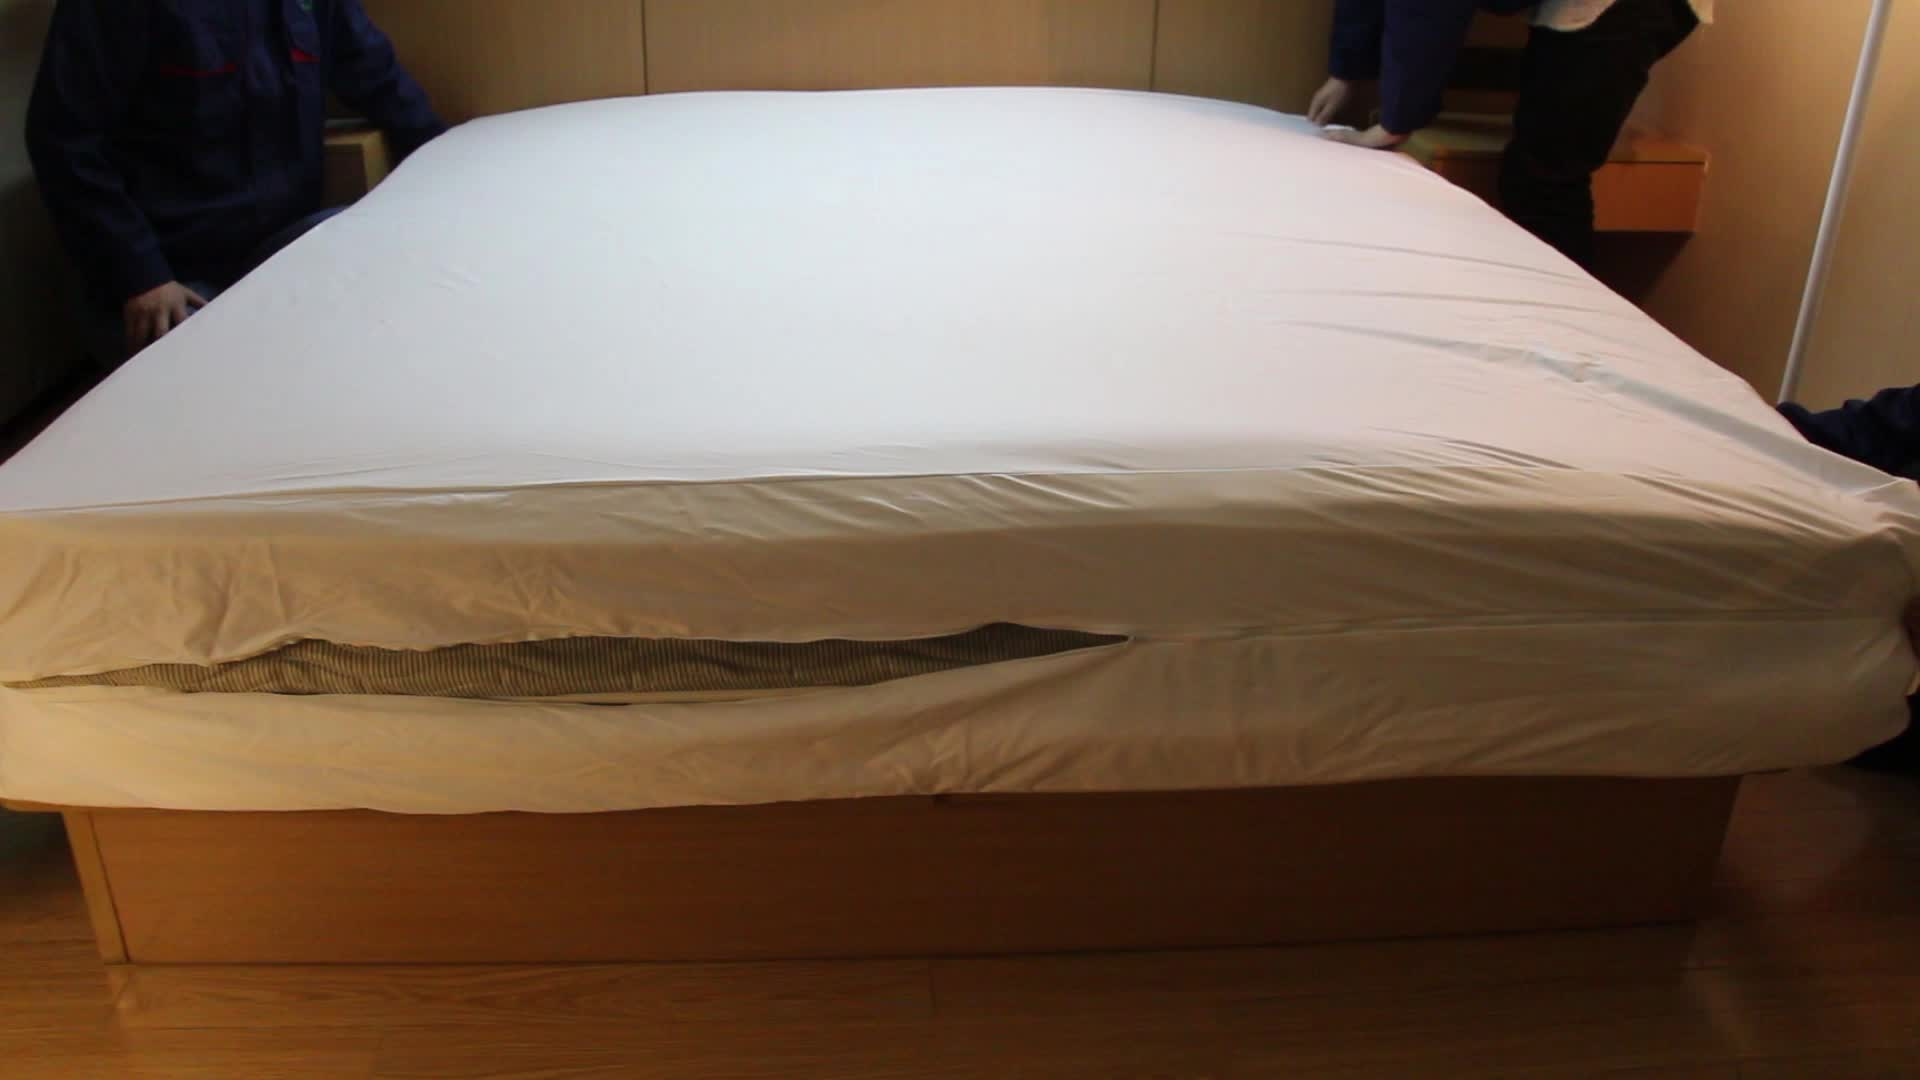 Waterproof Bed Bug Proof Zipper Mattress encasement with Knitted cloth  fabric for adult Bed or crib pad protector